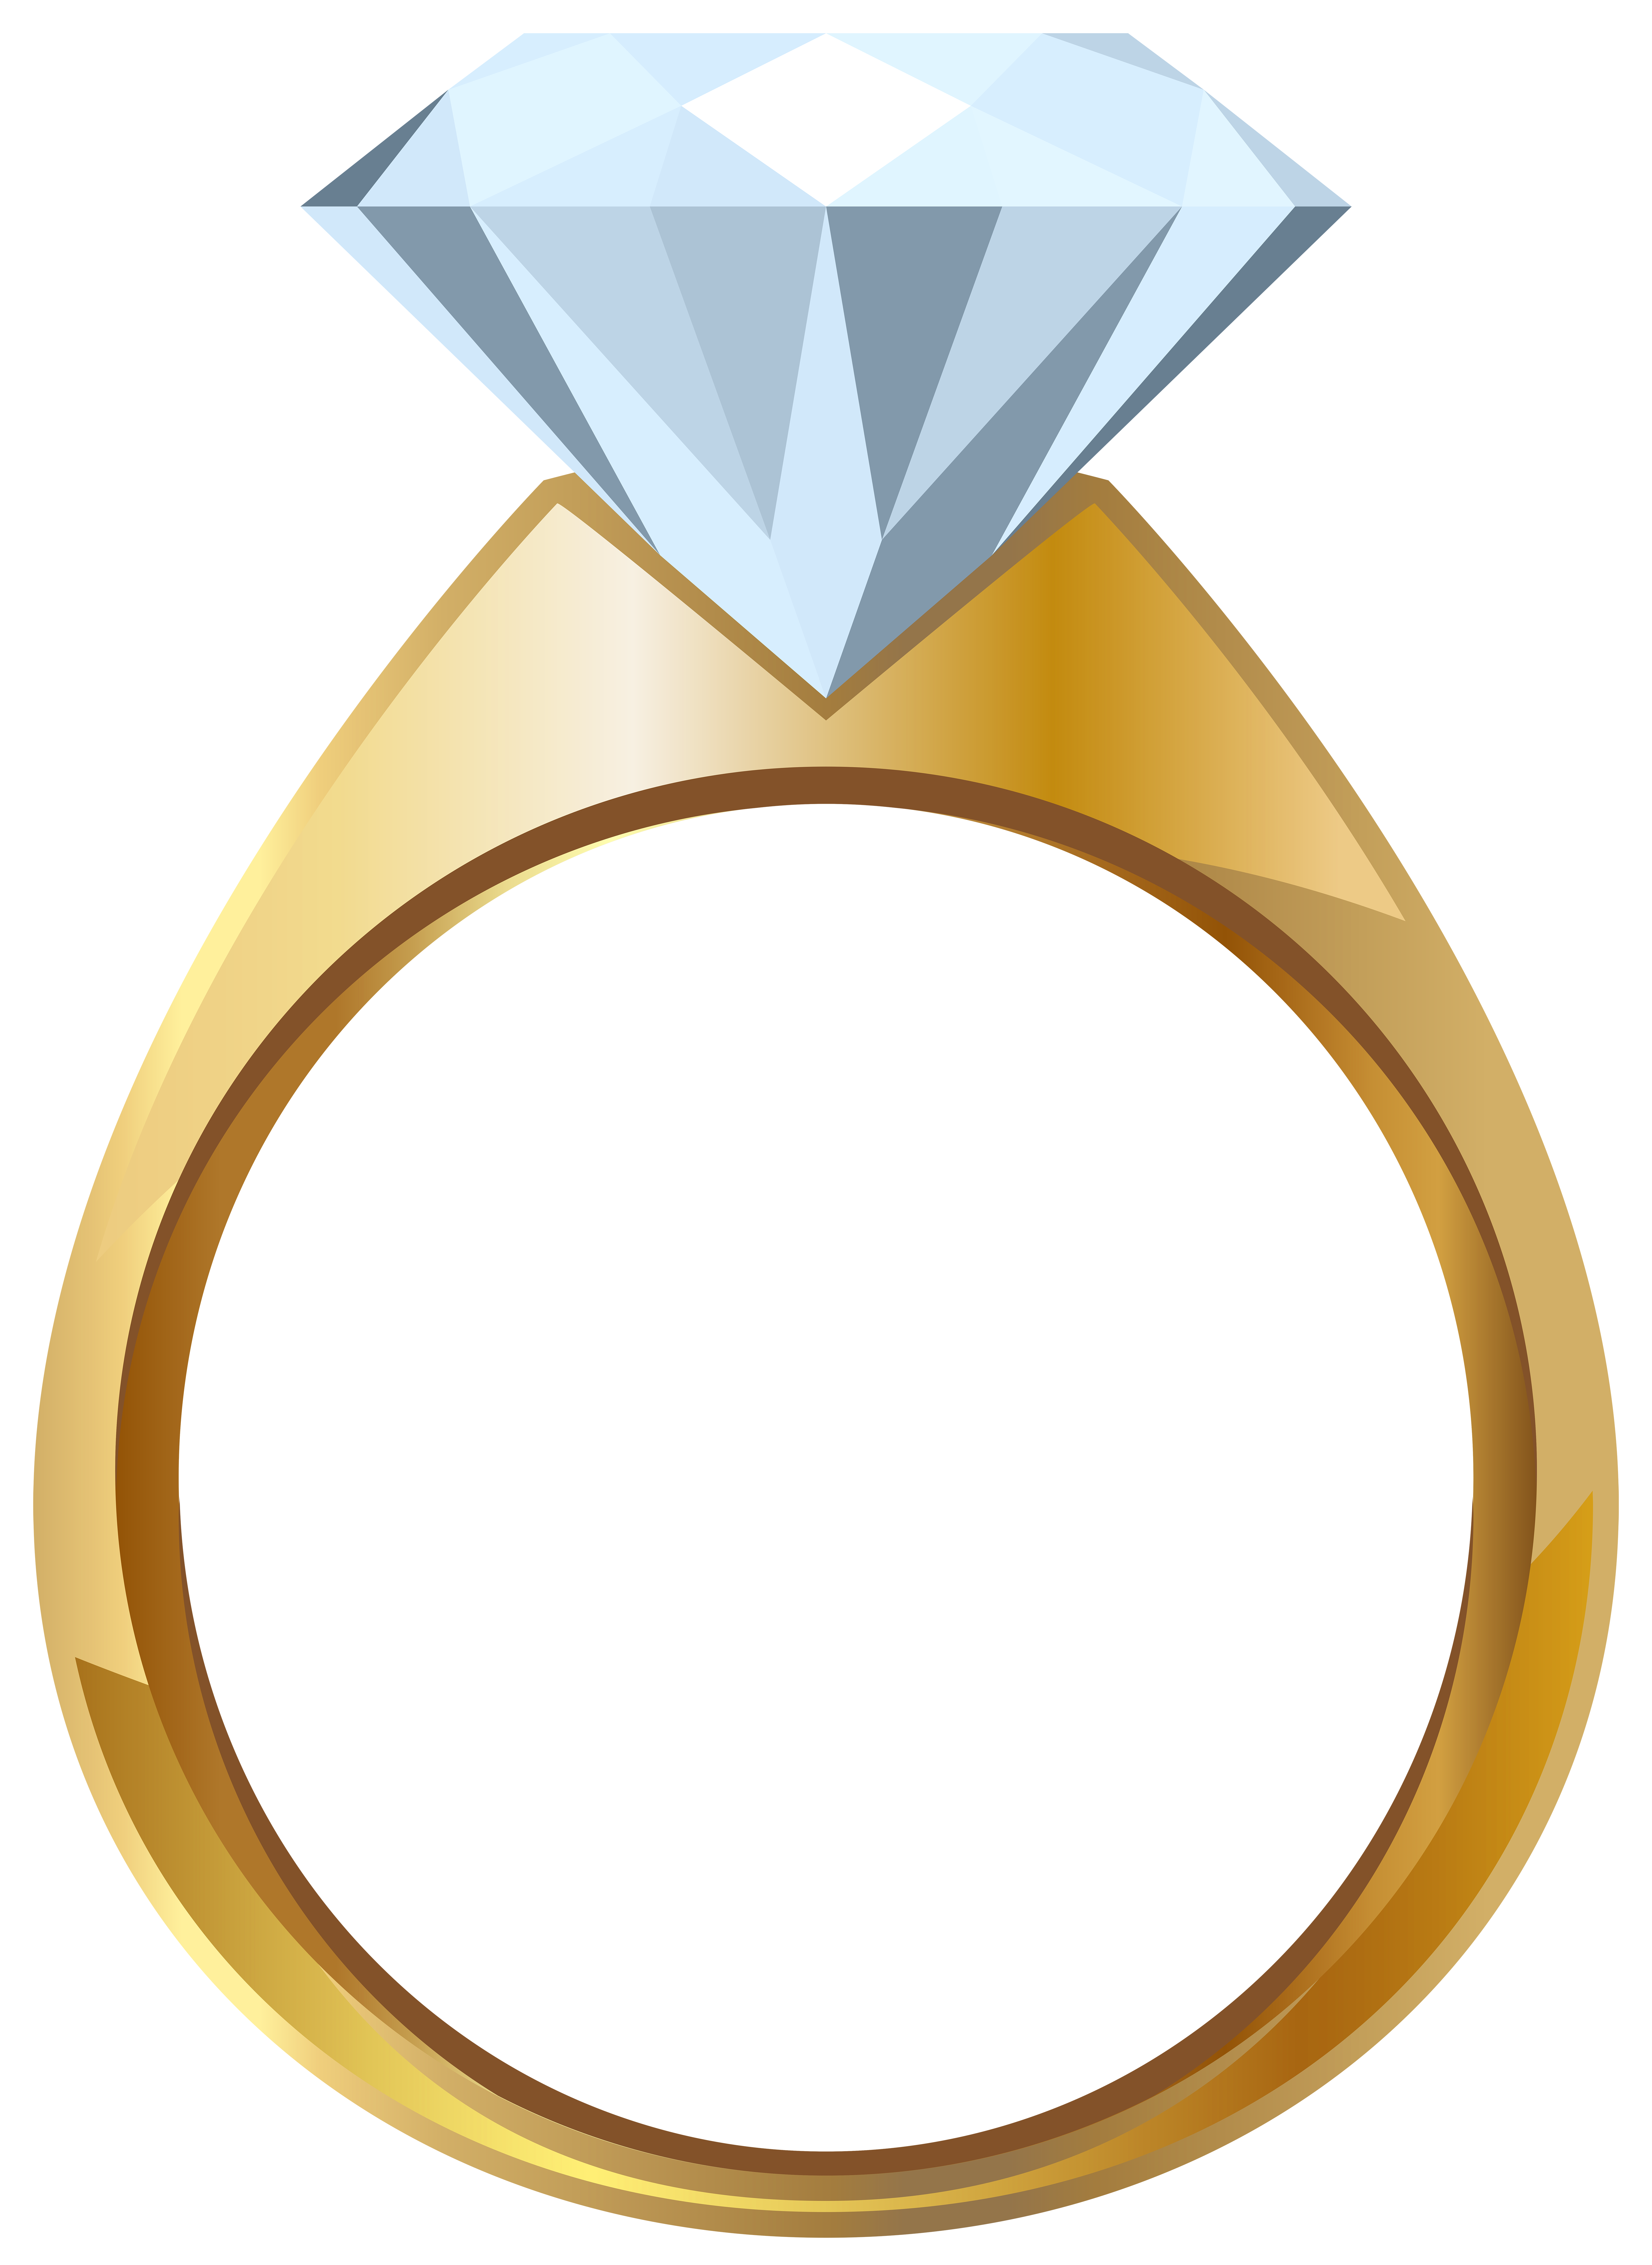 Diamonds clipart bag. Gold engagement ring png